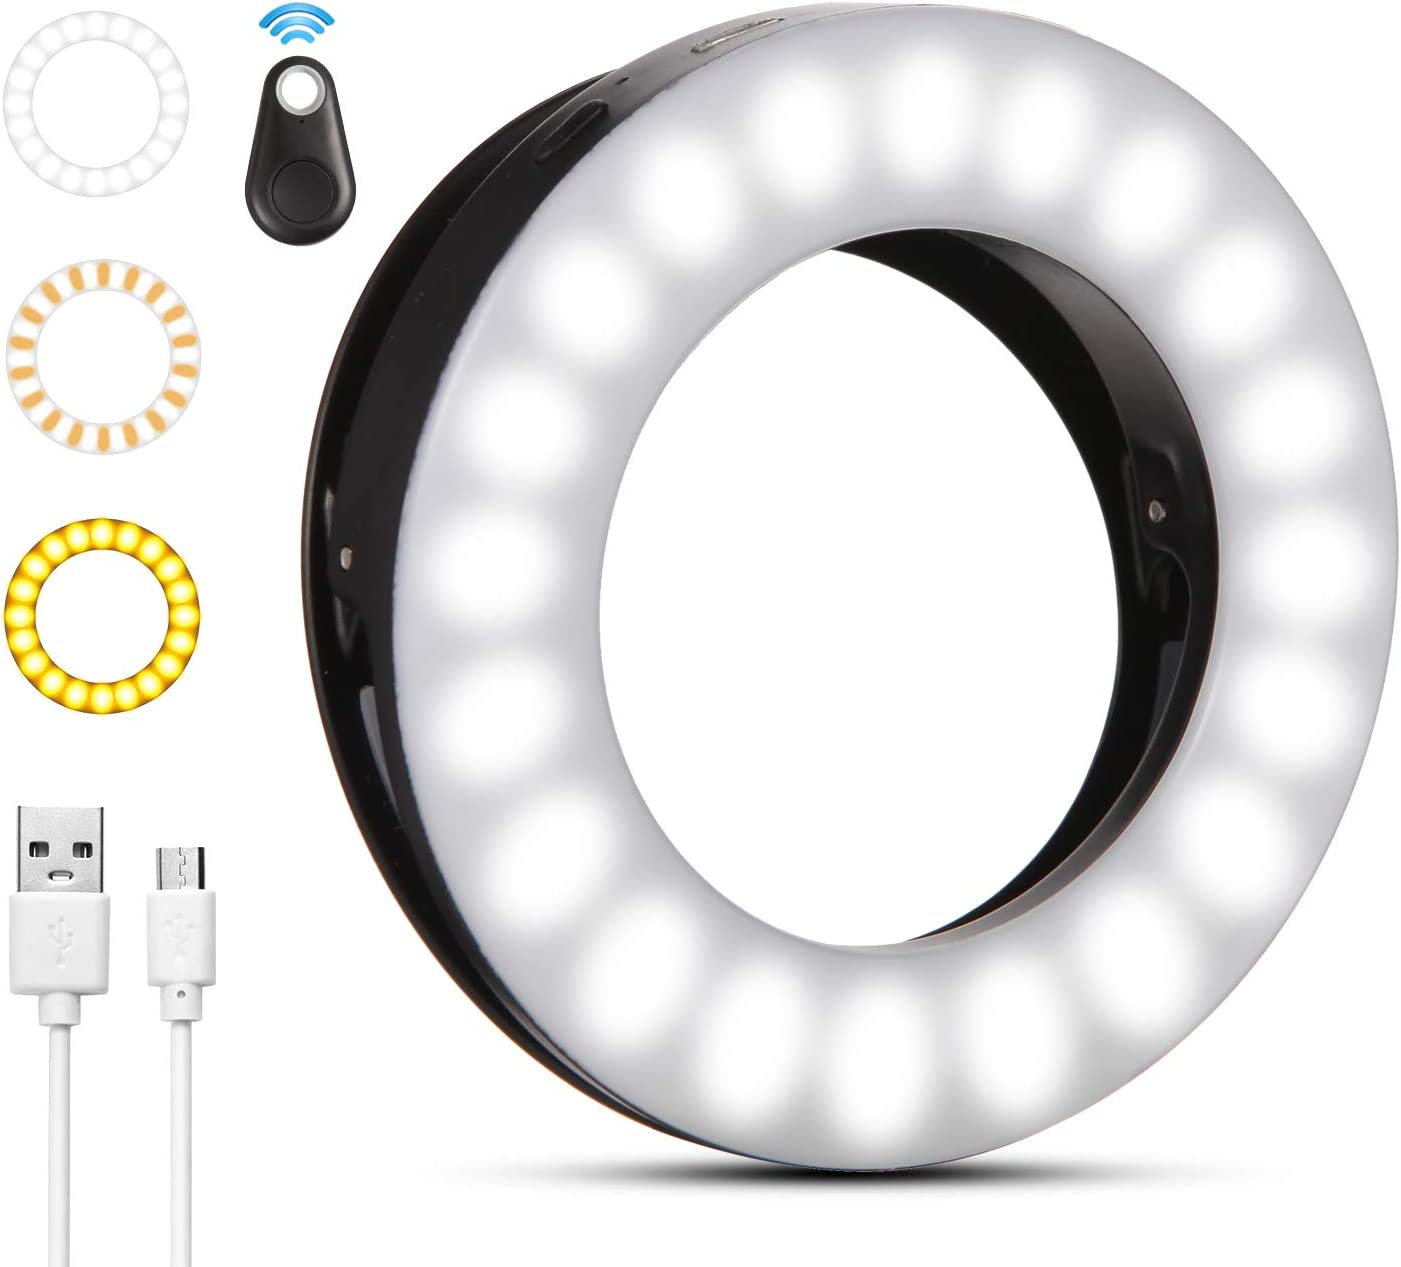 Disnadda Selfie Ring Light,3 Lighting Modes Rechargeable Clip on Selfie Fill Light with 40 Led for iPhone Laptop Android Smart Phone Photography, Camera Video, Girl Makes Up(White) (Black)